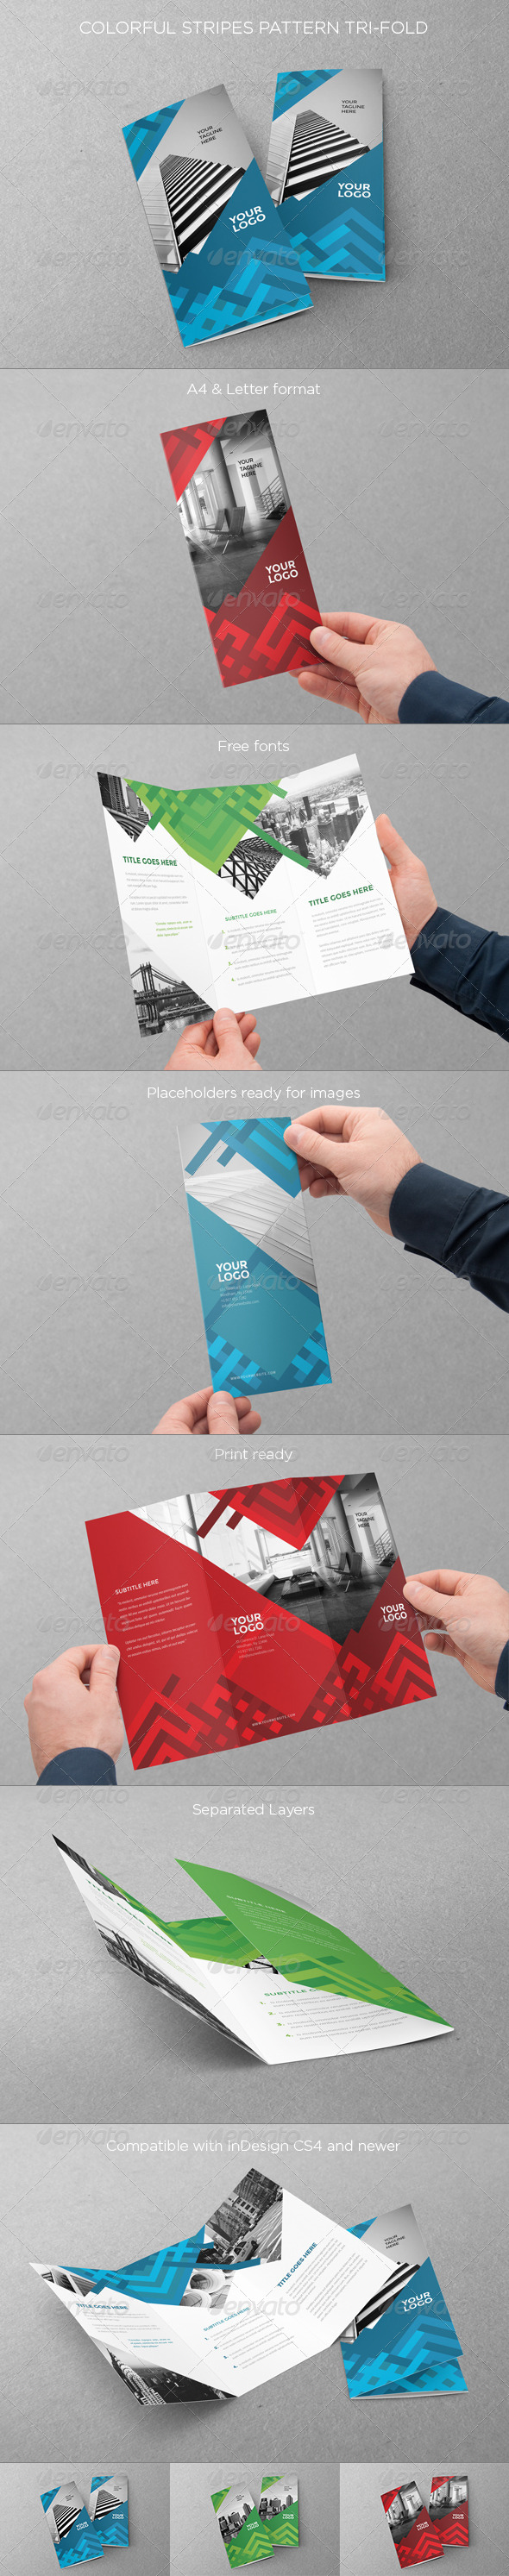 GraphicRiver Colorful Stripes Pattern Trifold 8569893